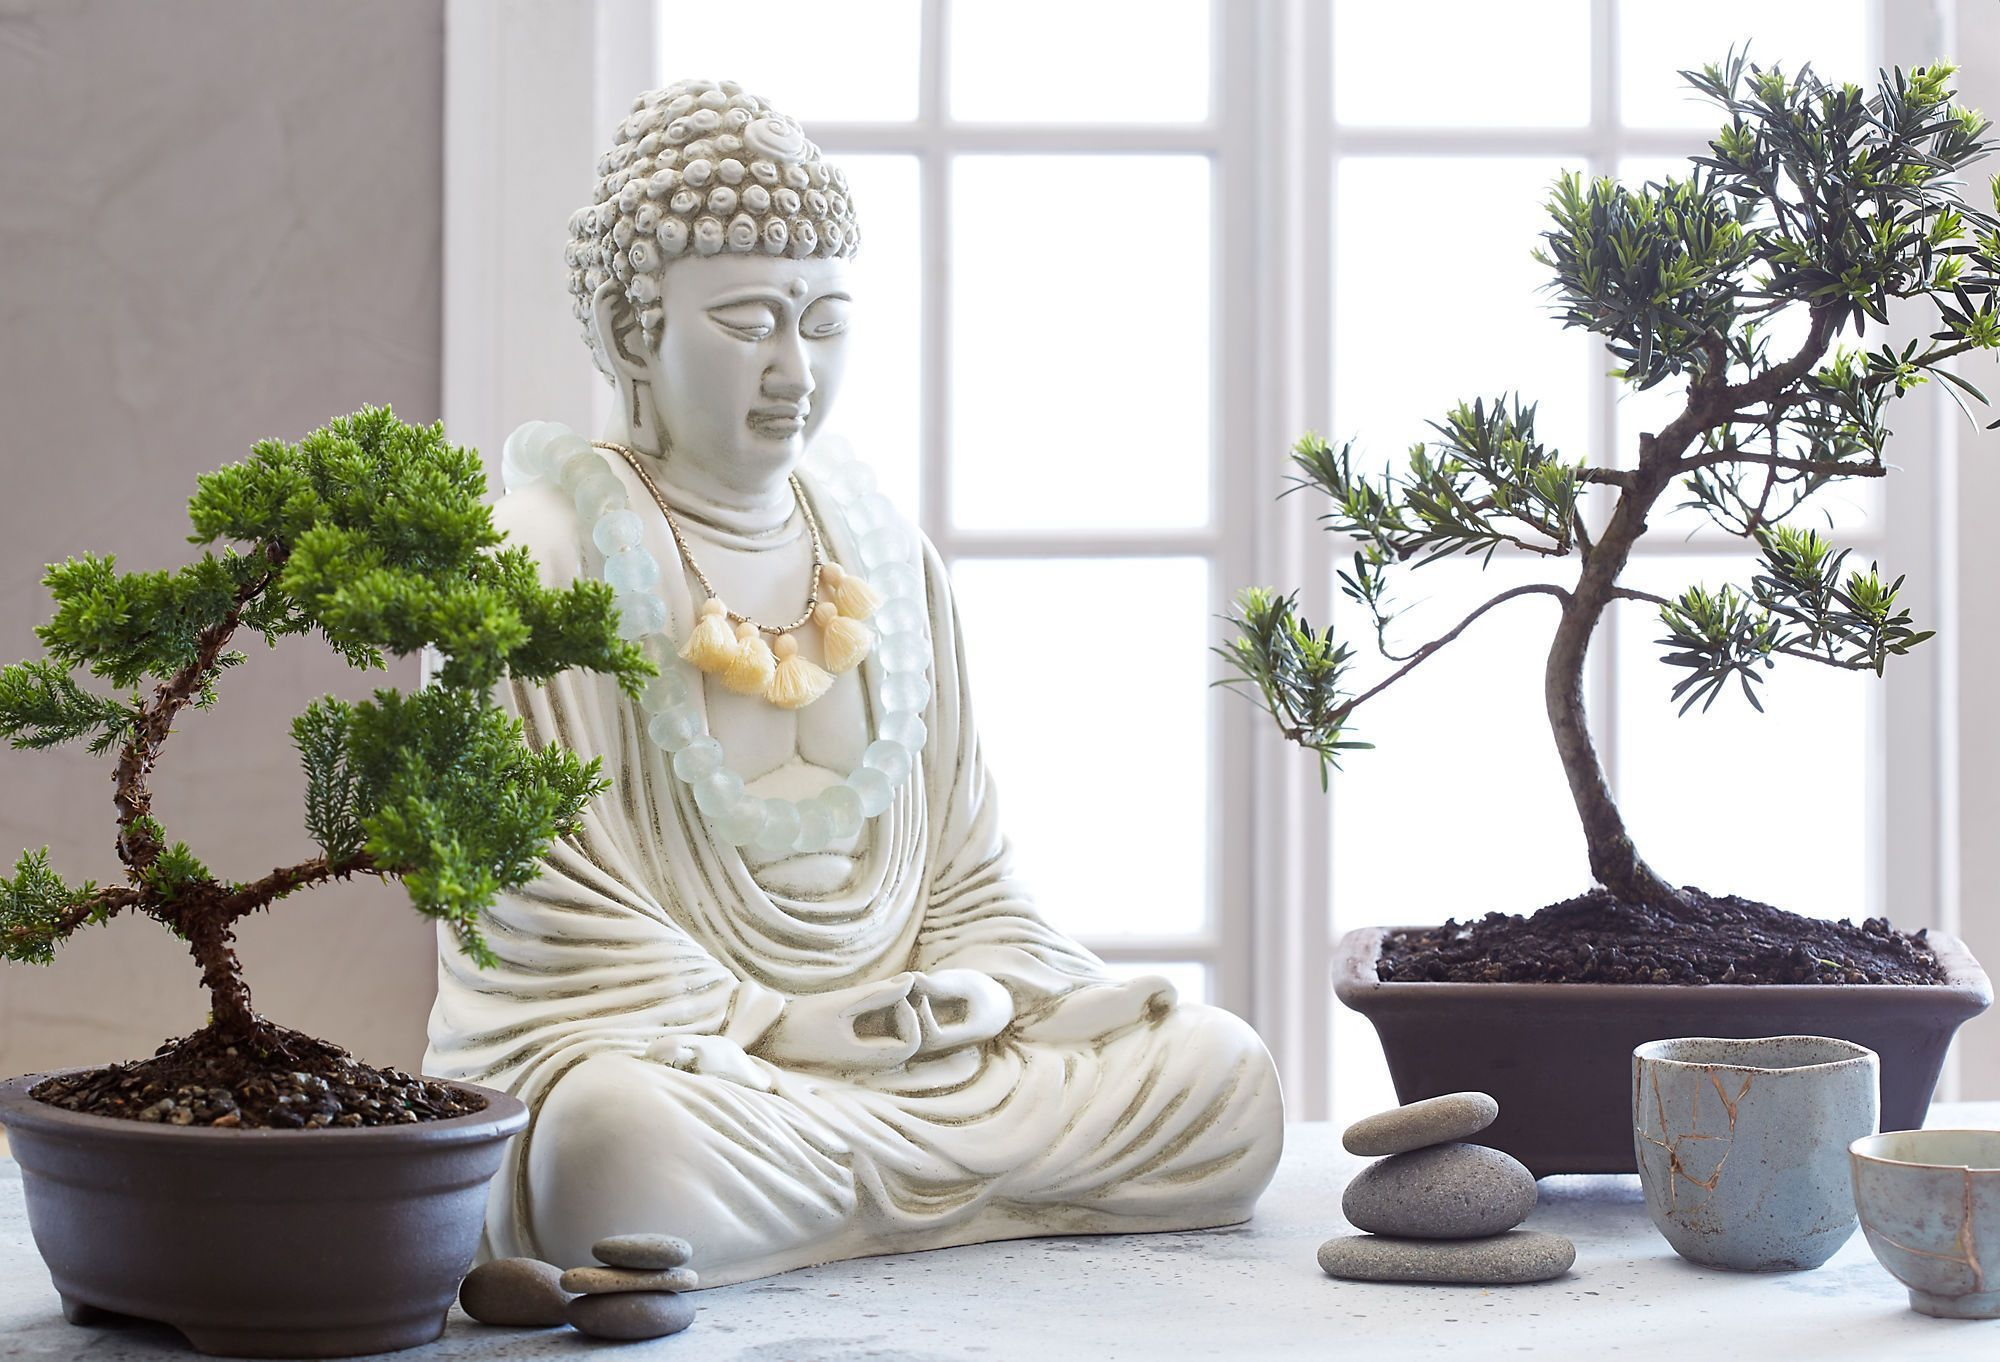 Buddha Dekoration Serenity Now Zen Garden Finds For Indoors And Out Stuff I